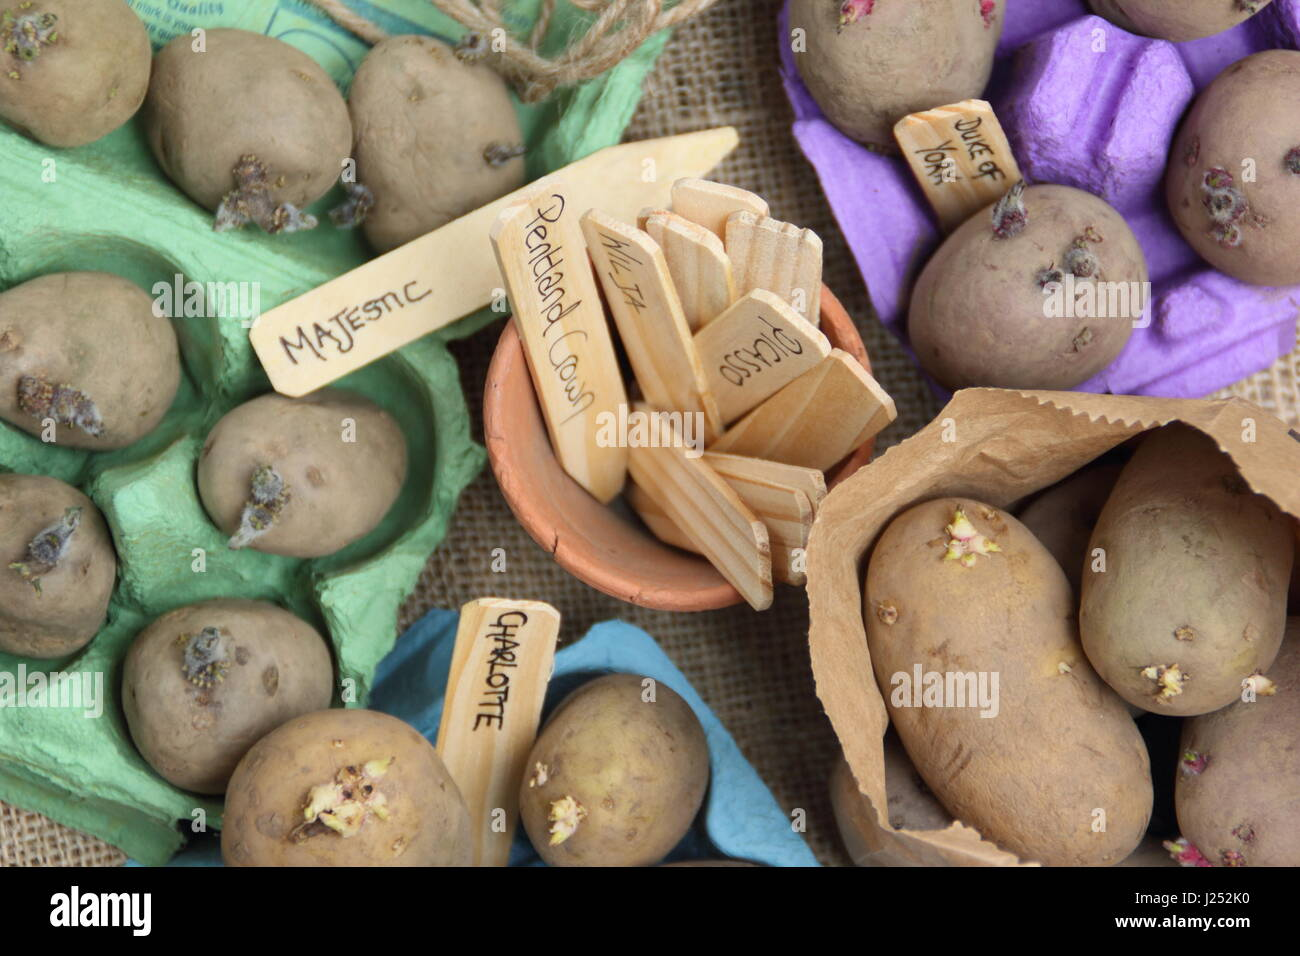 Labelleing seed potato varieties chitting in egg box  indoors to encourage strong sprouts before planting out in - Stock Image